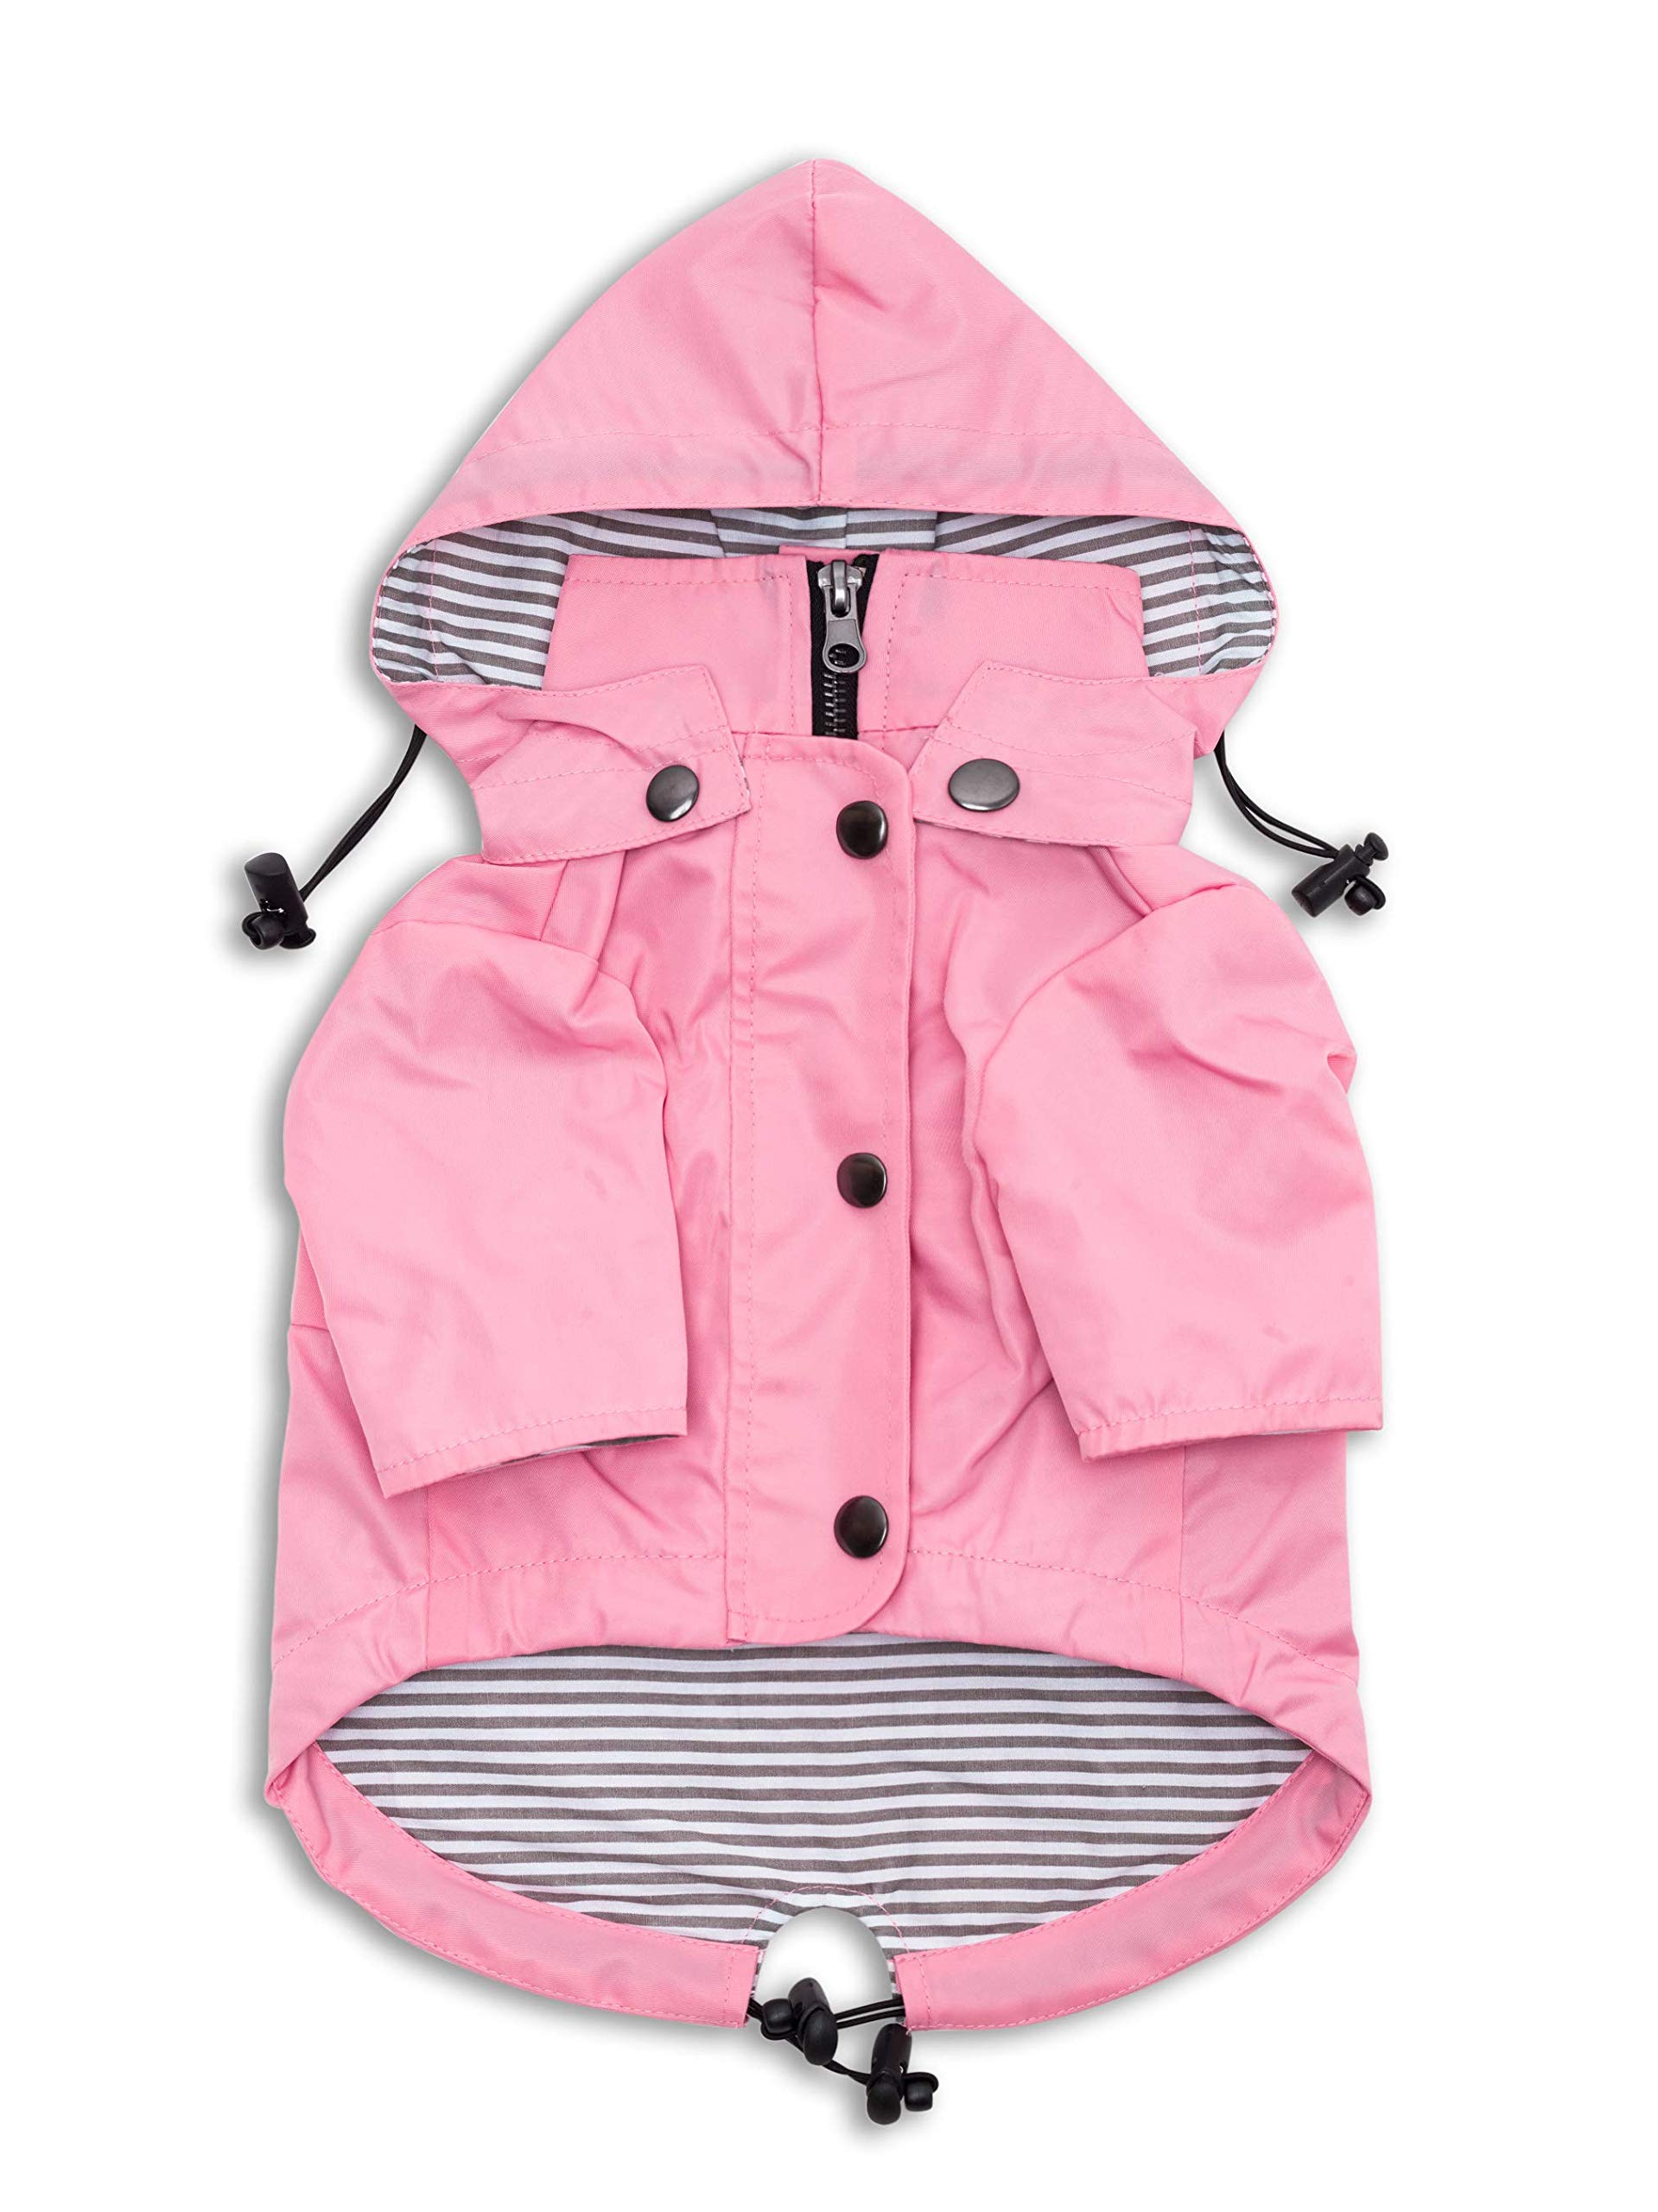 Ellie Dog Wear Zip Up Dog Raincoat Pink with Reflective Buttons, Pockets, Water Resistant, Adjustable Drawstring, Removable Hoodie - Size XS to XXL Available - Stylish Premium Dog Raincoats (L) by Ellie Dog Wear